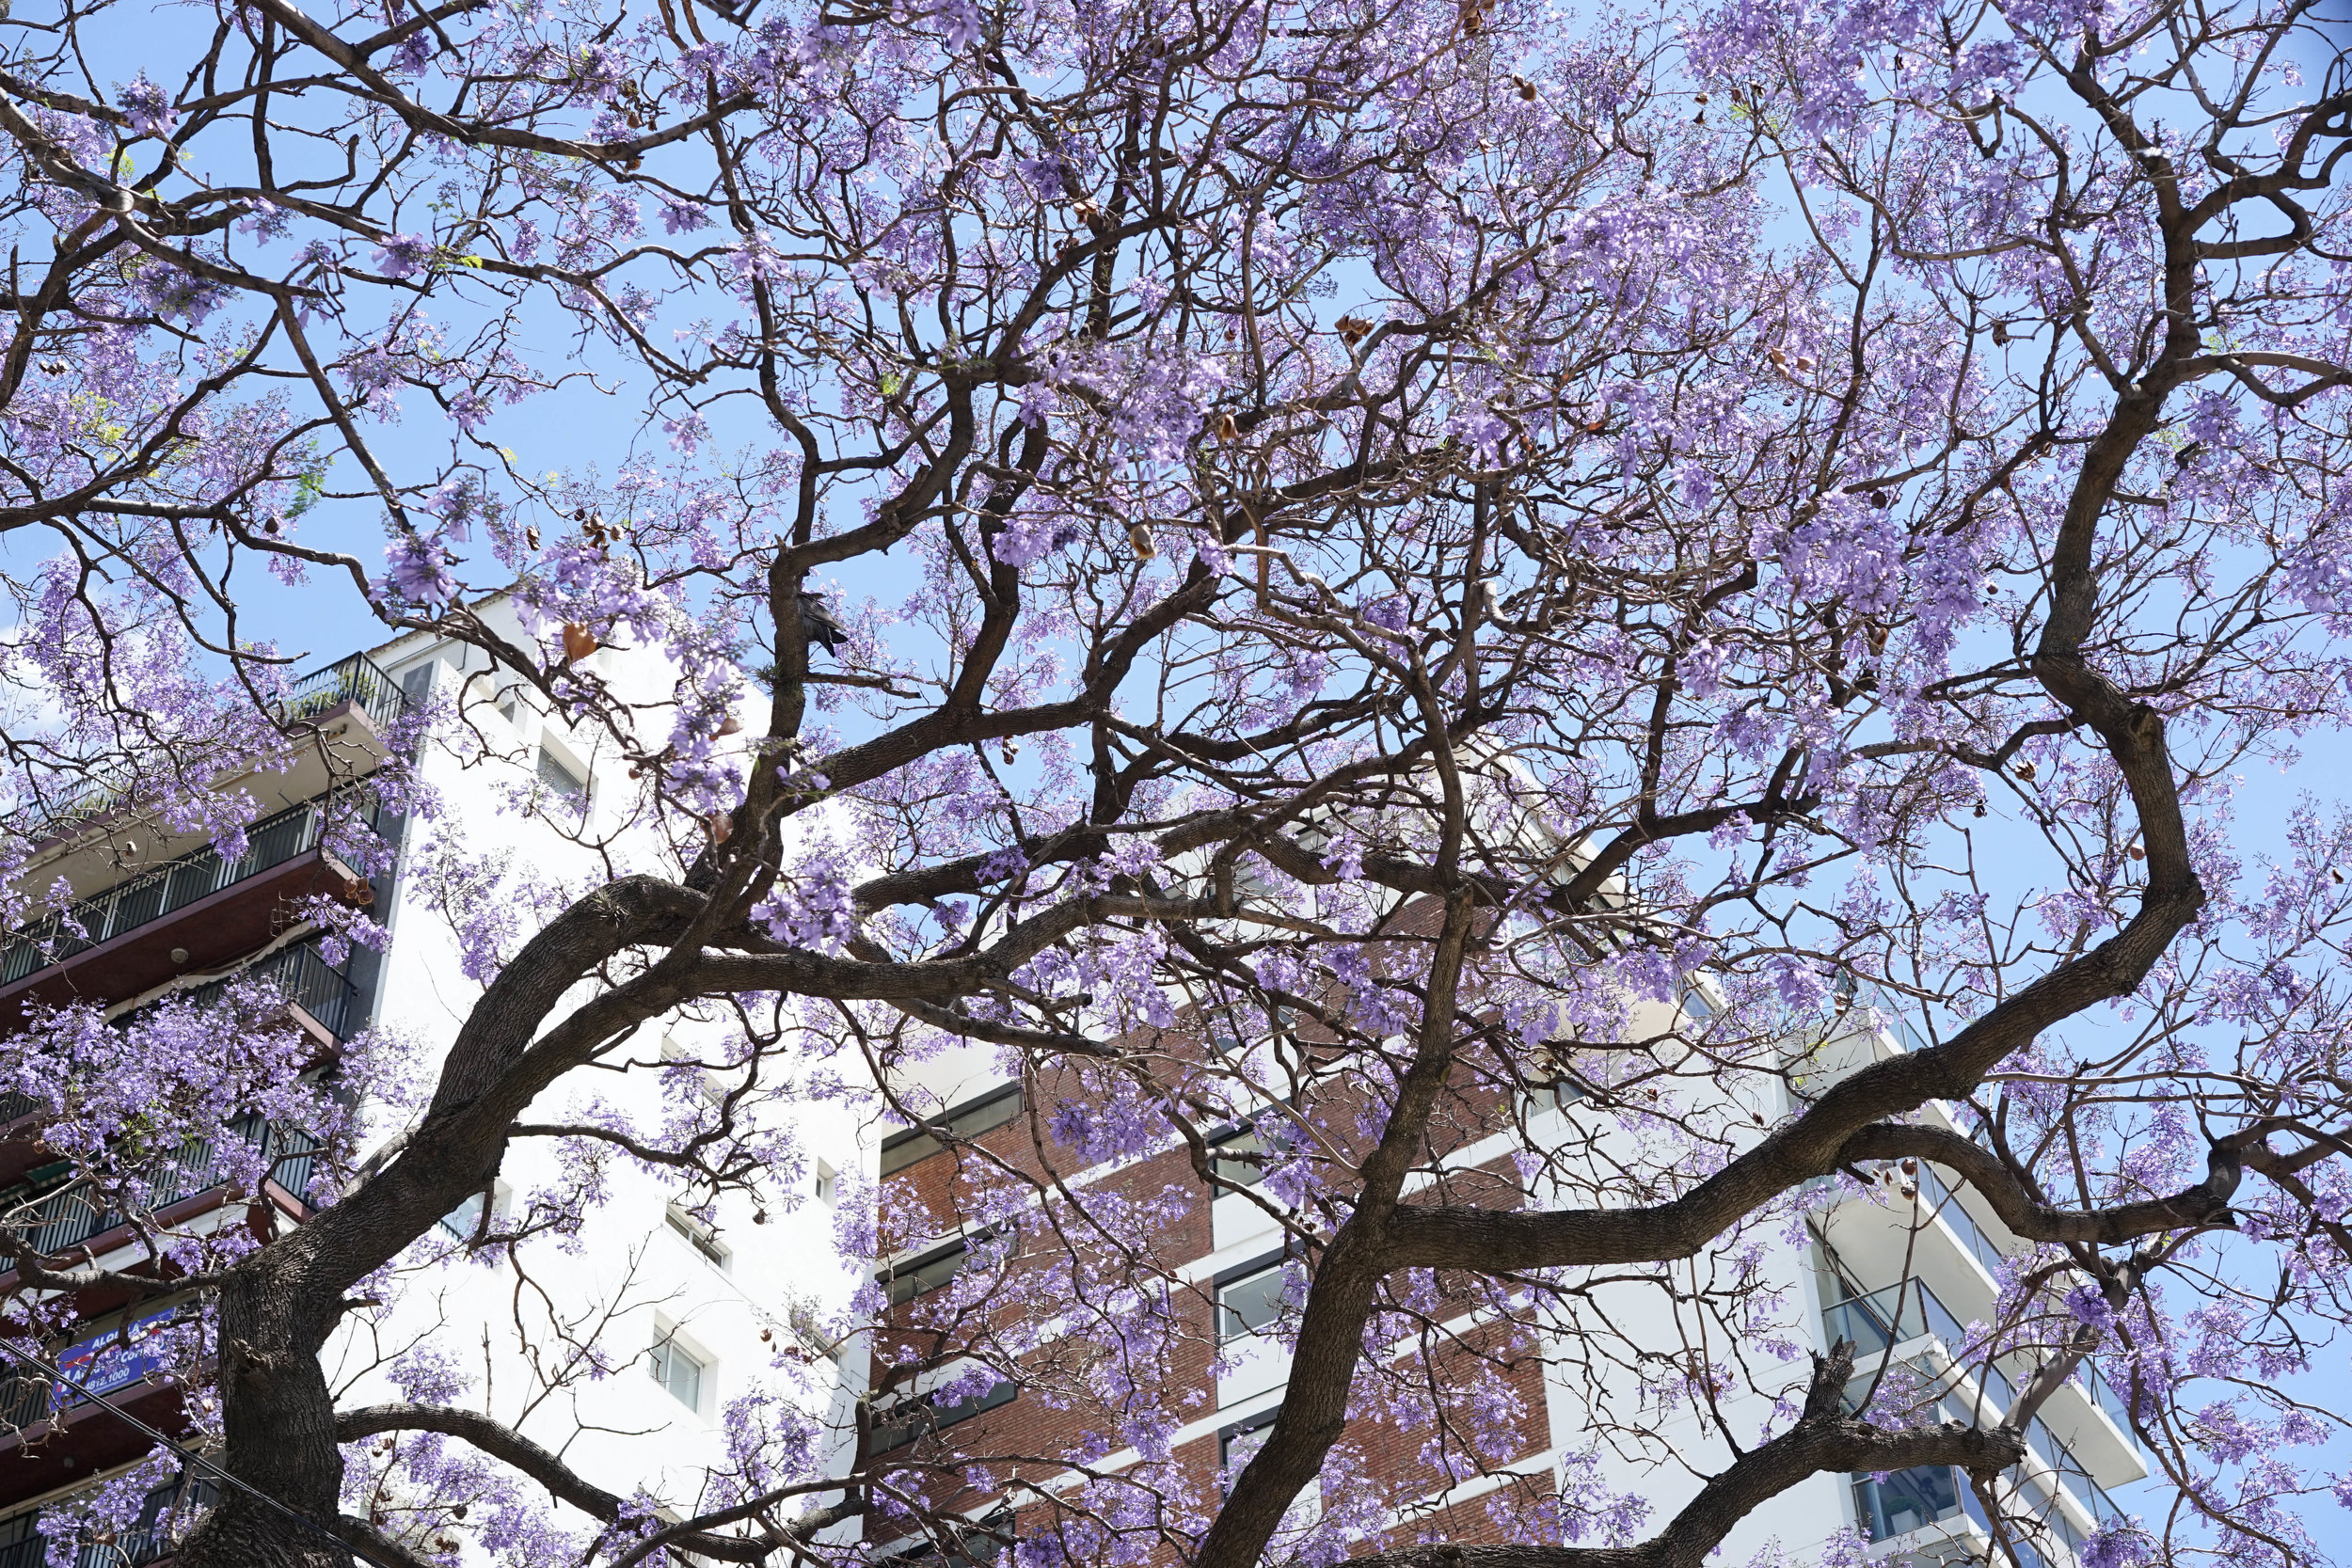 Spring has sprung in the Southern Hemisphere.